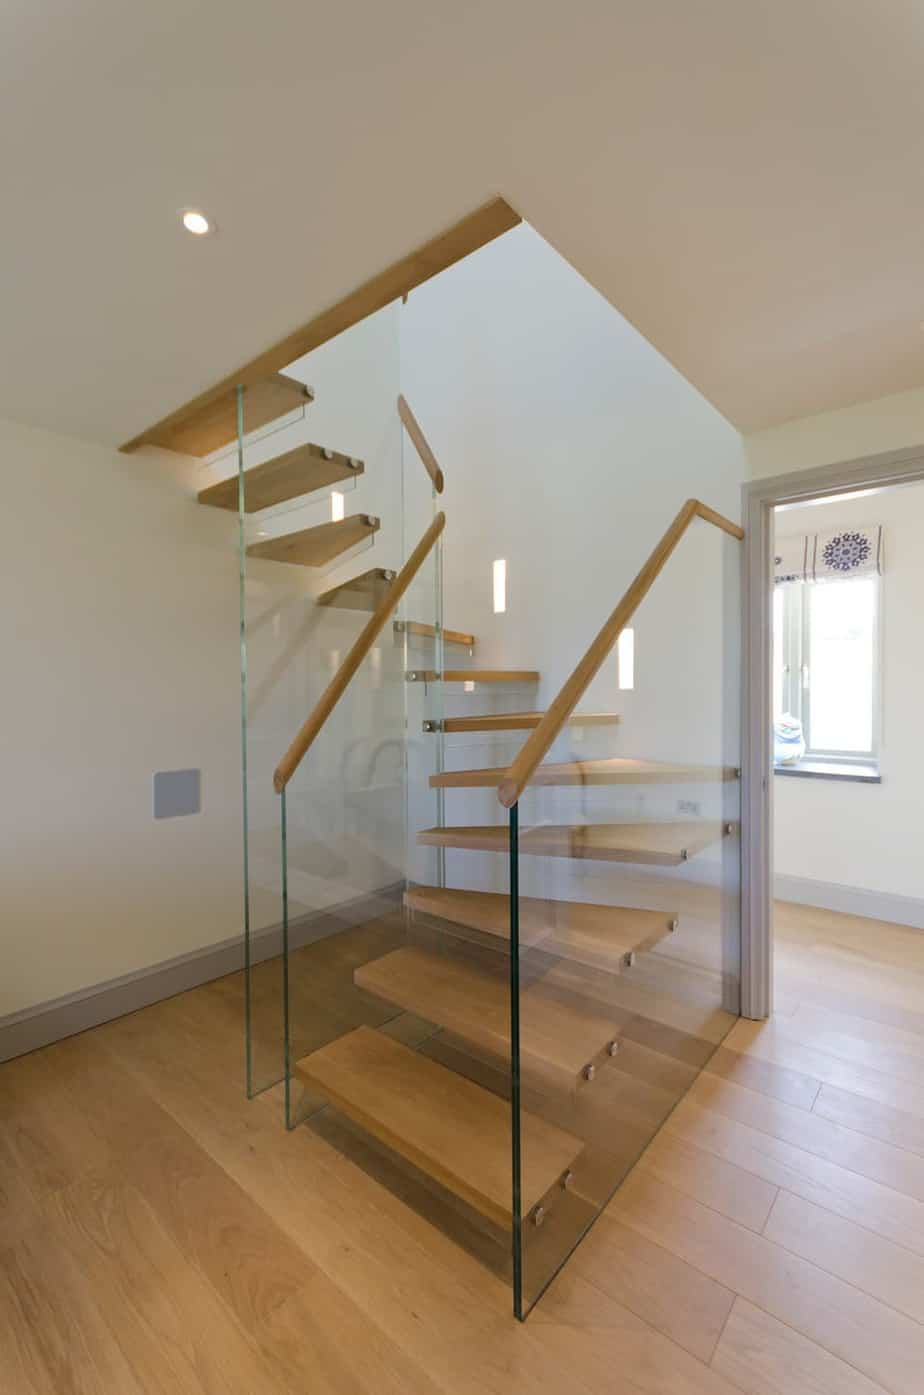 Stairs Camel Glass Windows Doors Stairs Balustrade